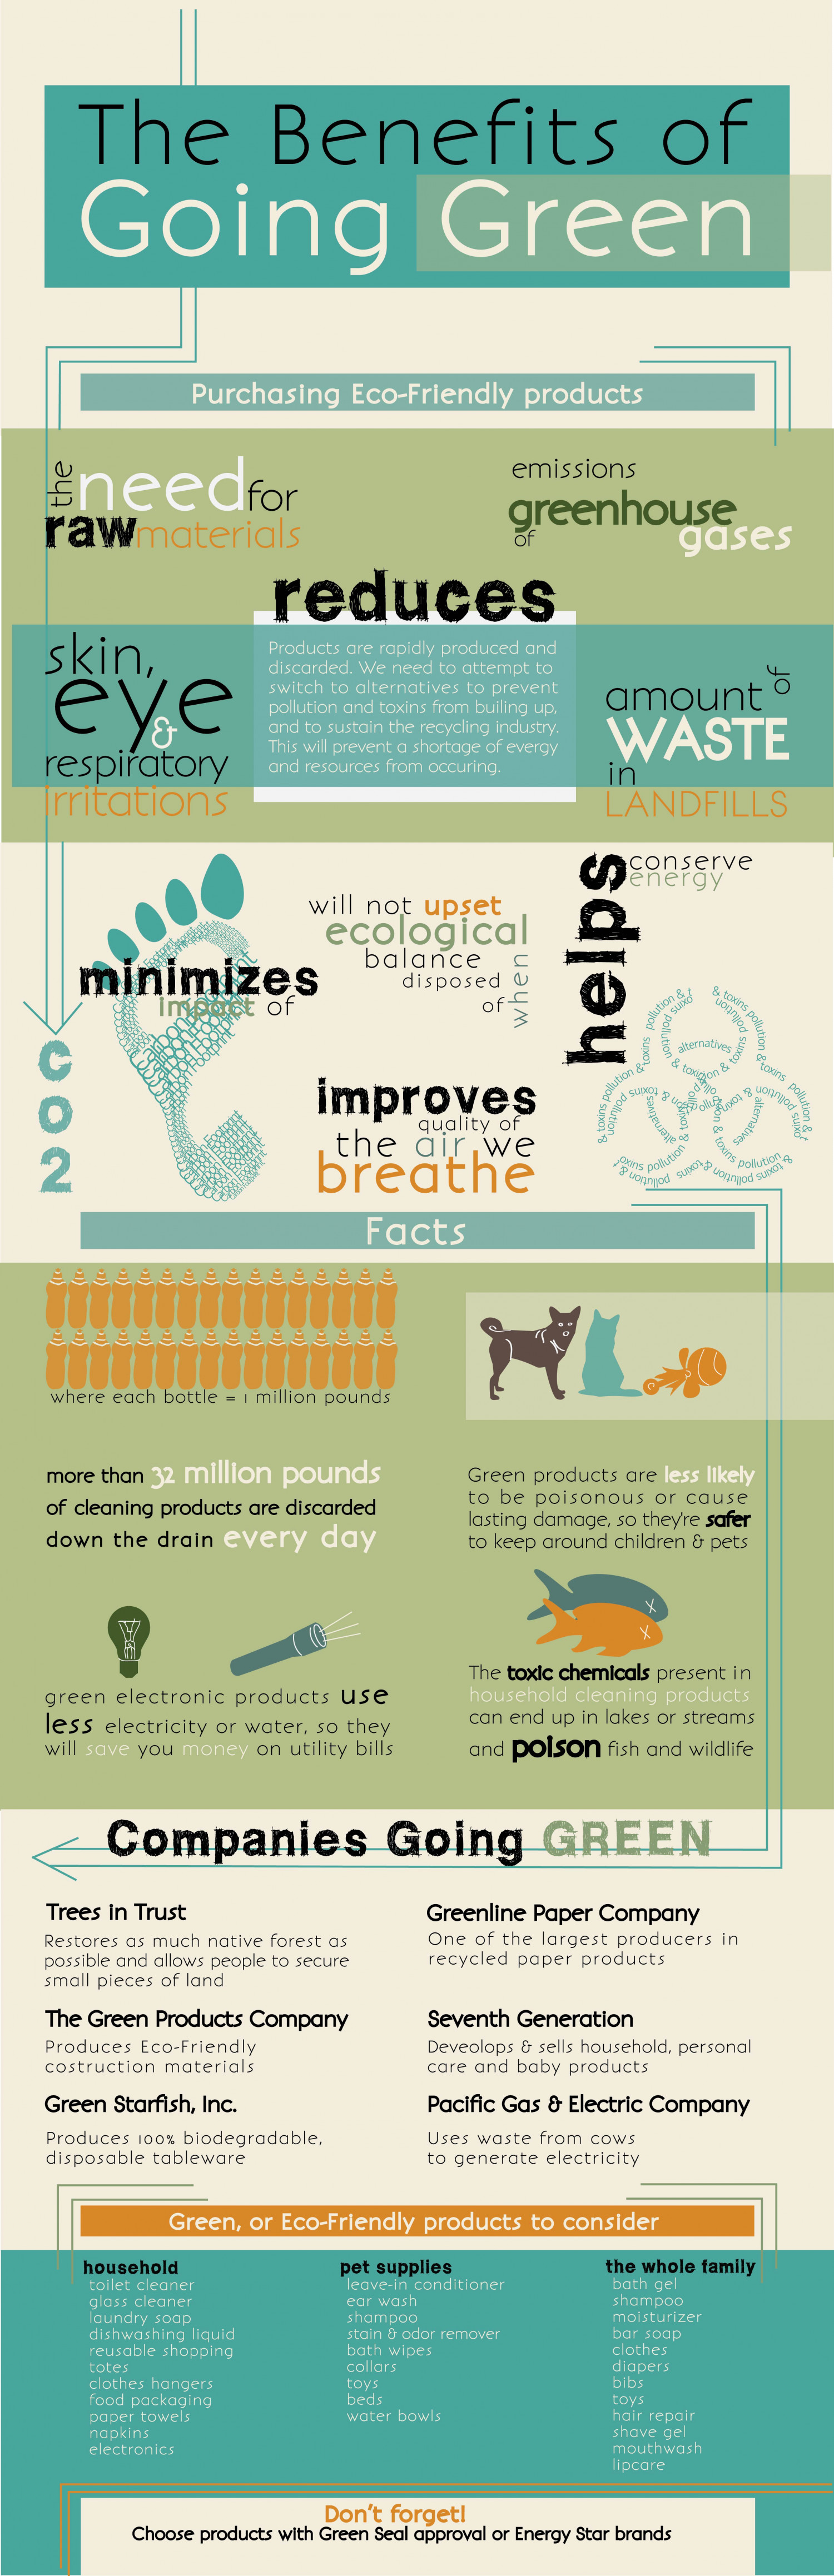 The Benefits of Going Green Infographic